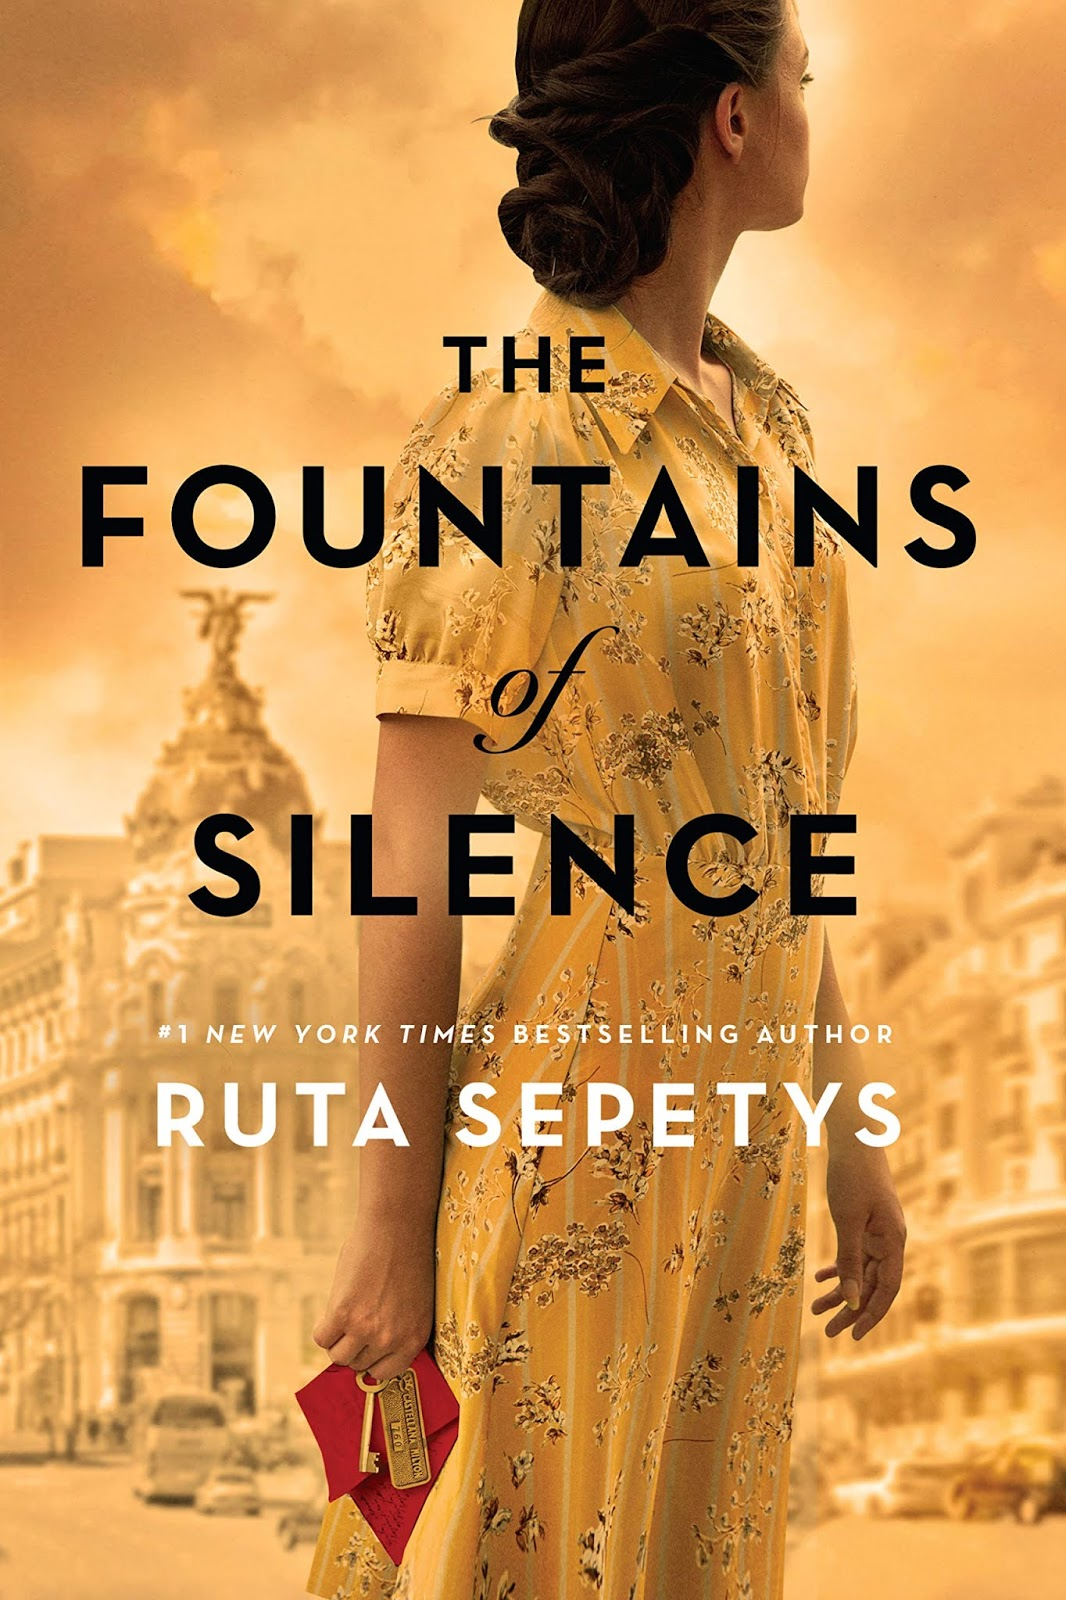 The Fountains of Silence by Ruta Sepetys | Superior Young Adult Fiction